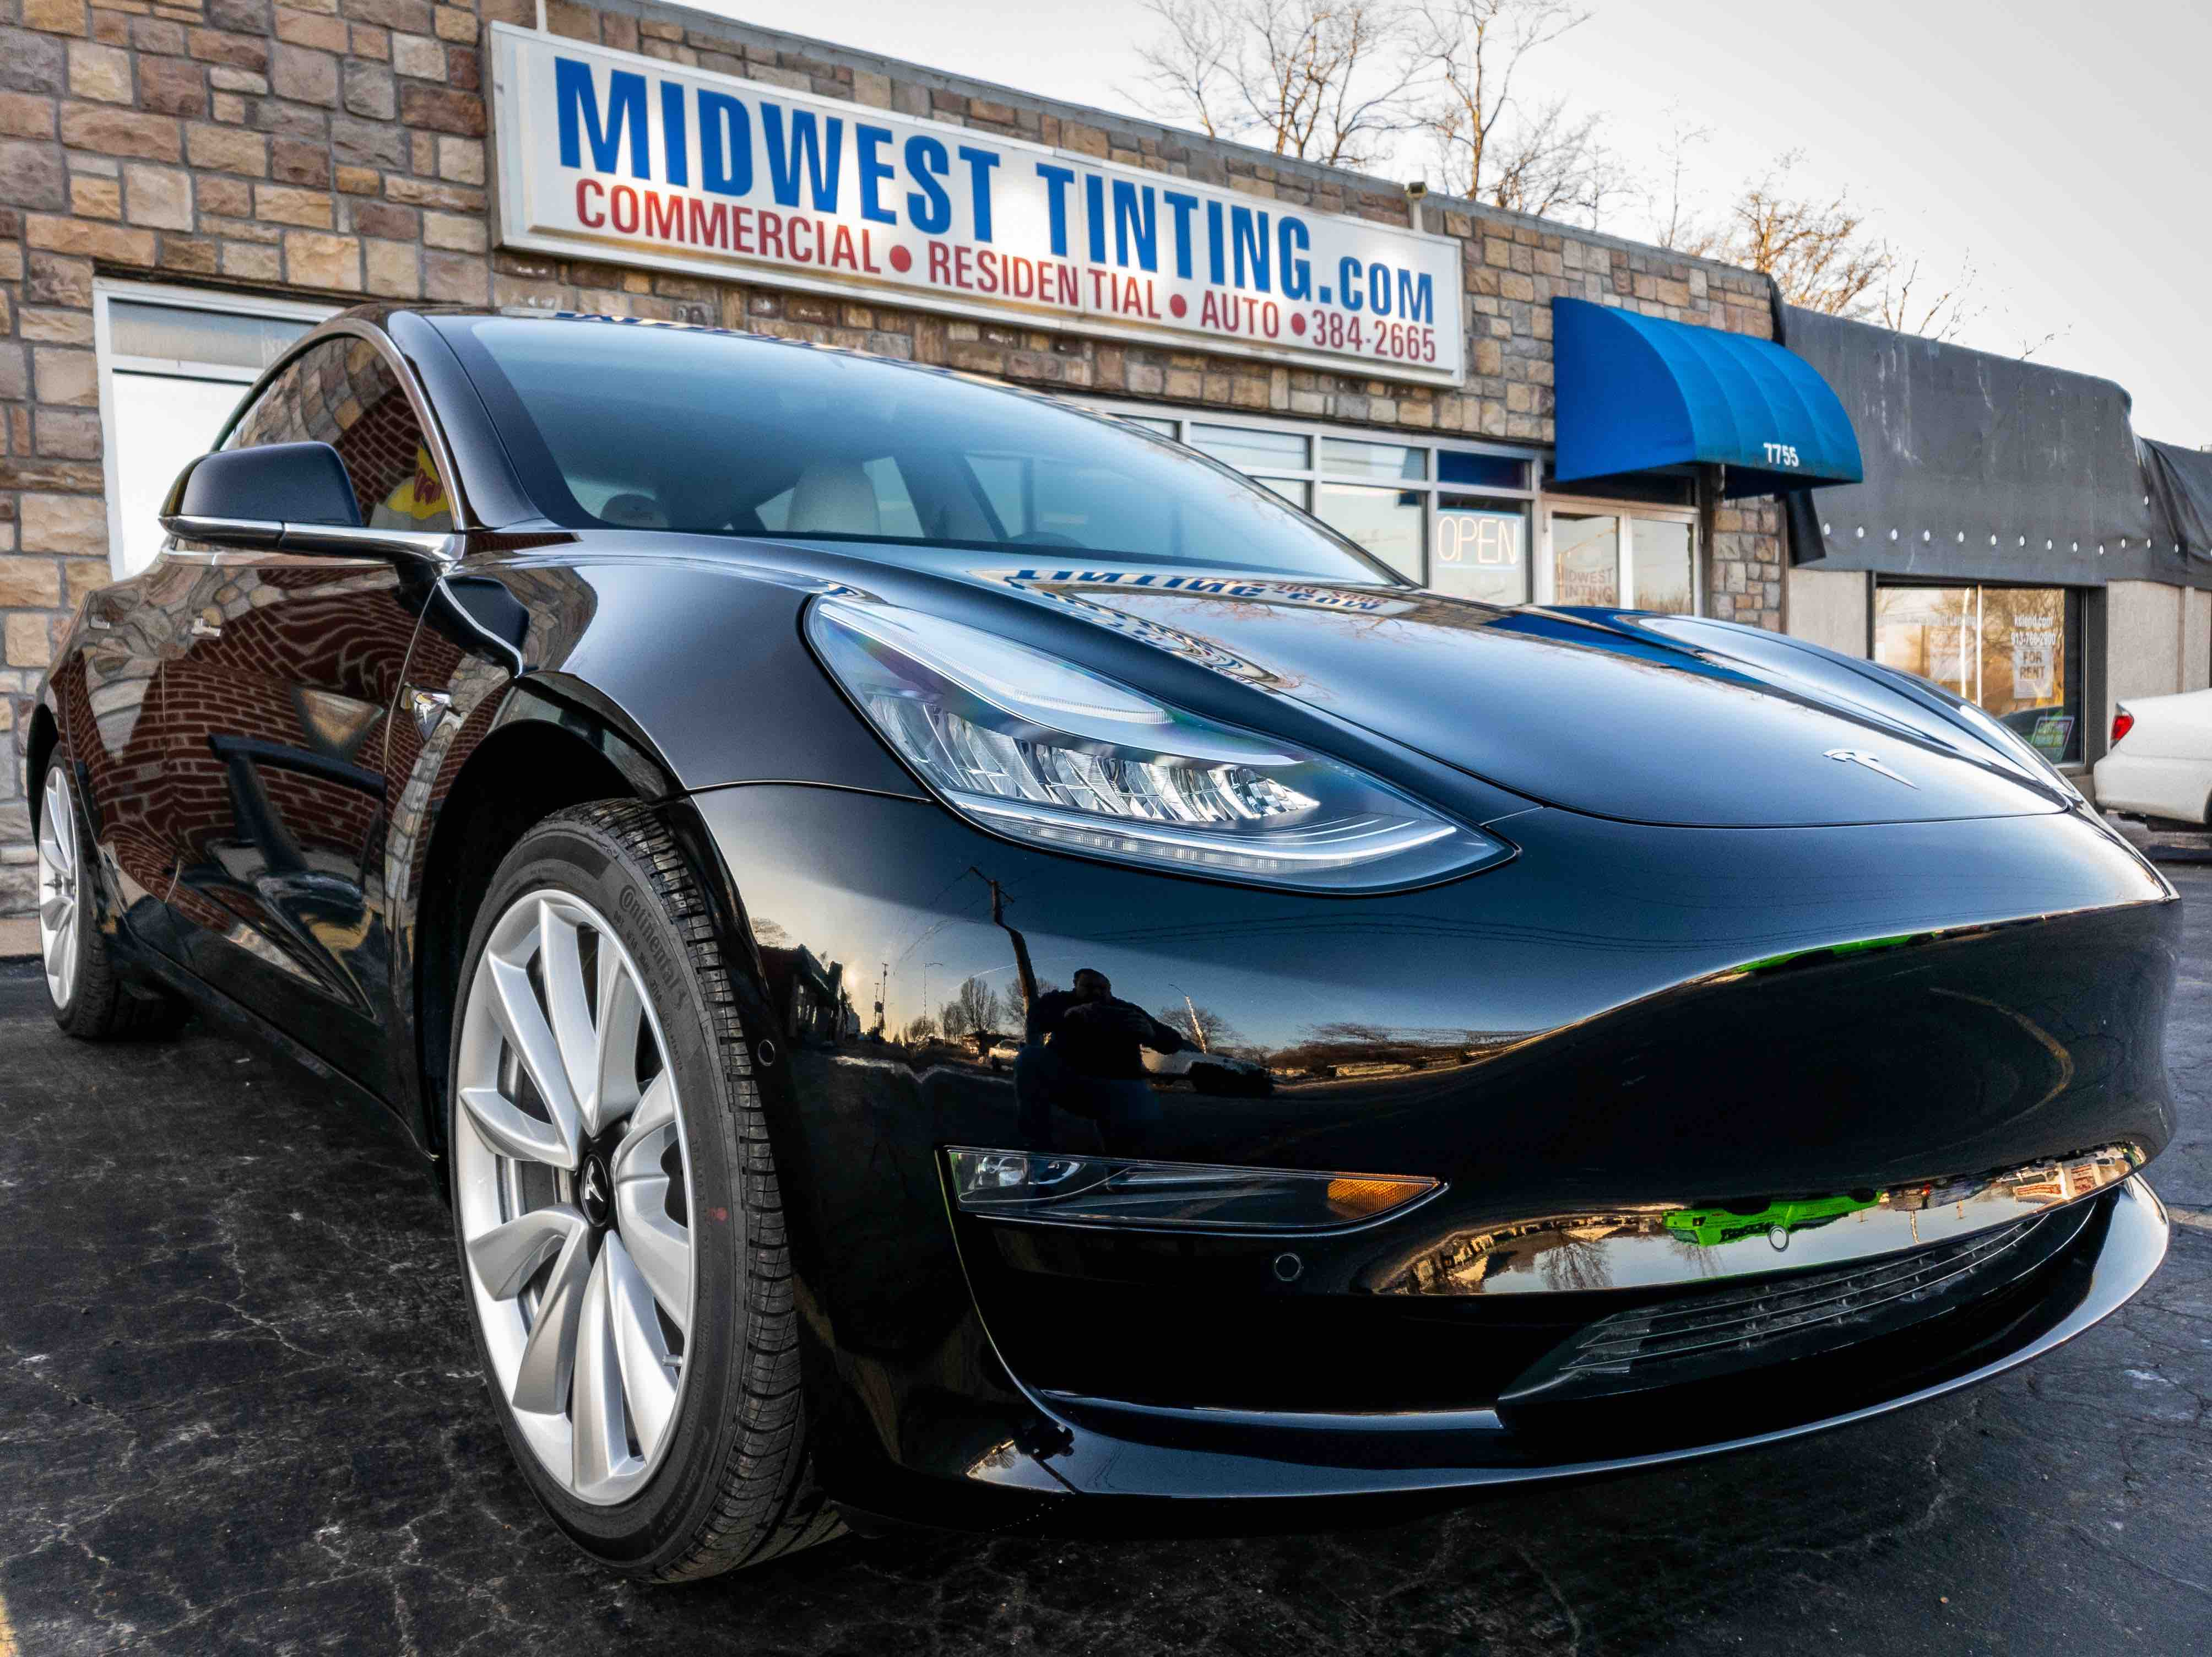 Cquartz Professional Ceramic Paint Coatings In Kansas City Window Tinting Paint Protection Film And Ceramic Paint Coating Specialists In Kansas City Midwest Tinting